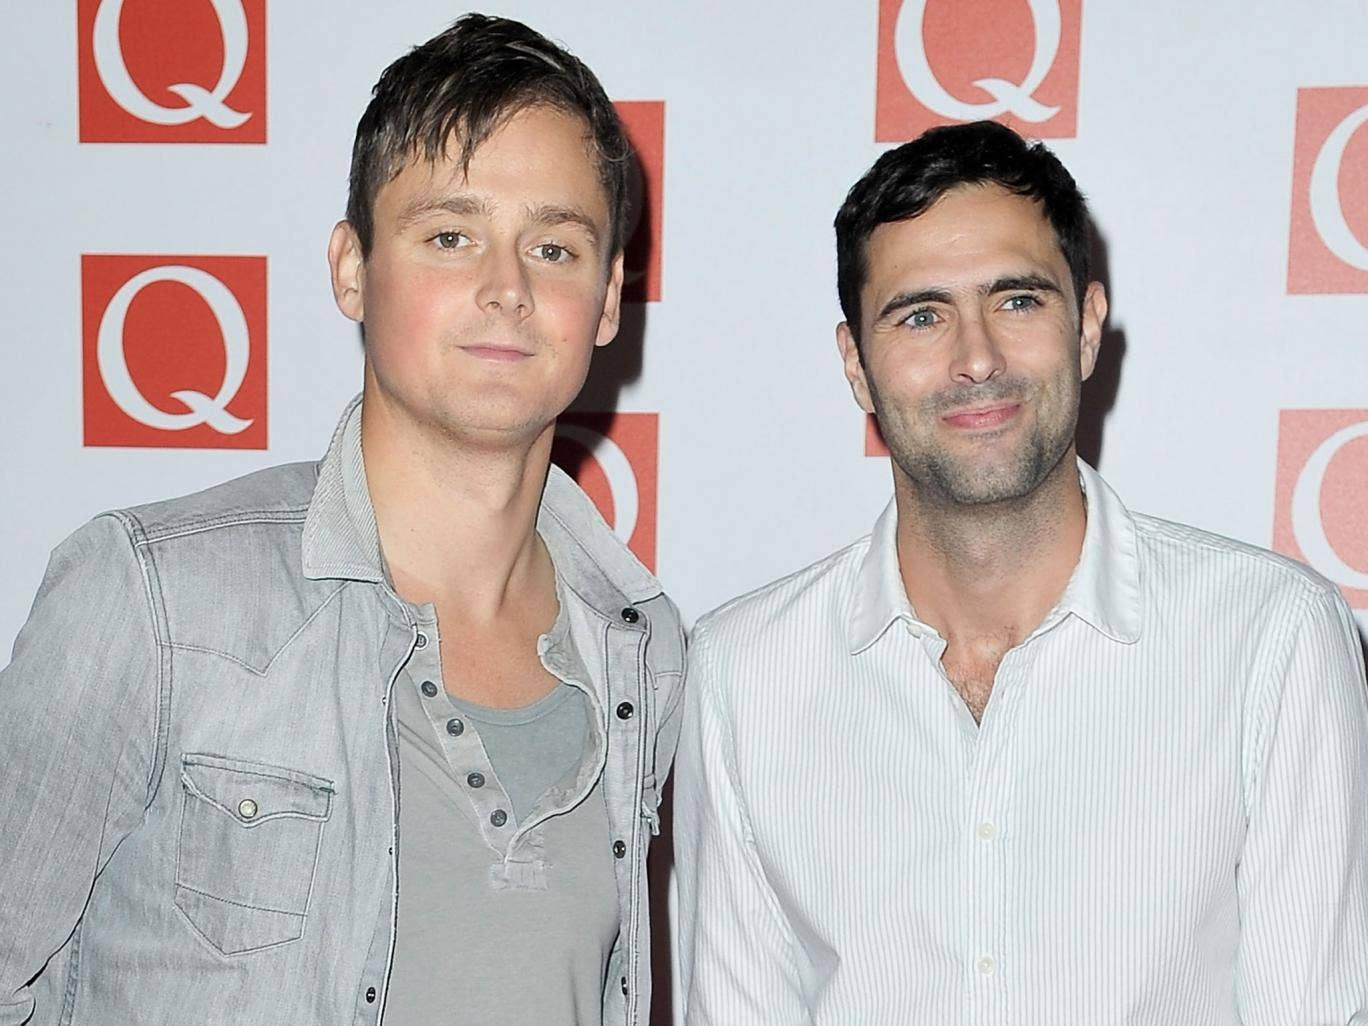 Keane's Tom Chaplin (left) and Tim Rice-Oxley